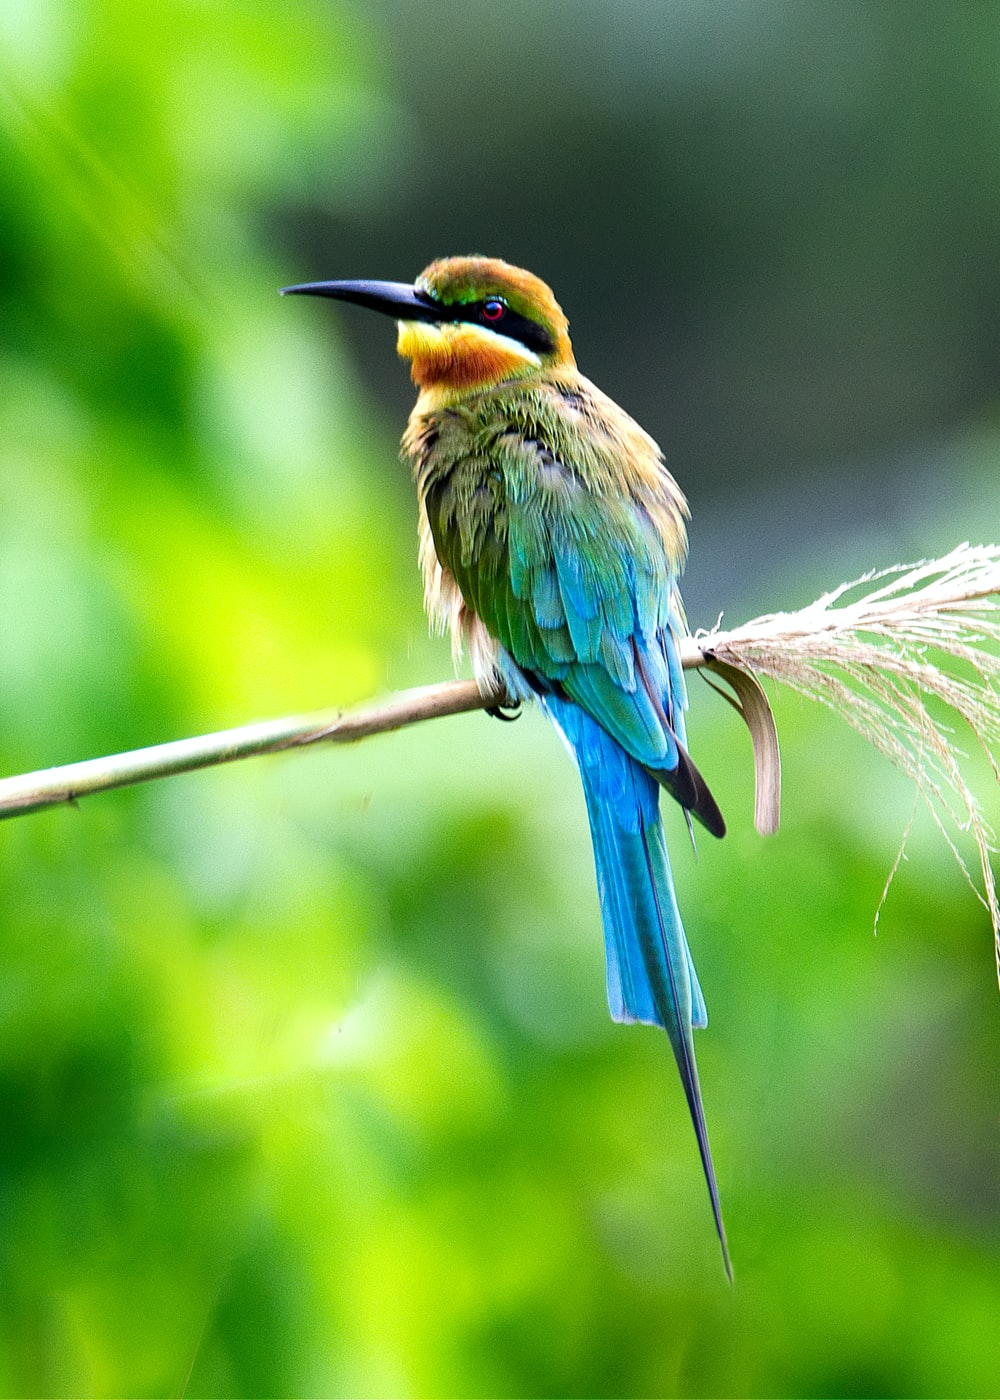 blue, yellow, and green long beaked bird on branch at daytime